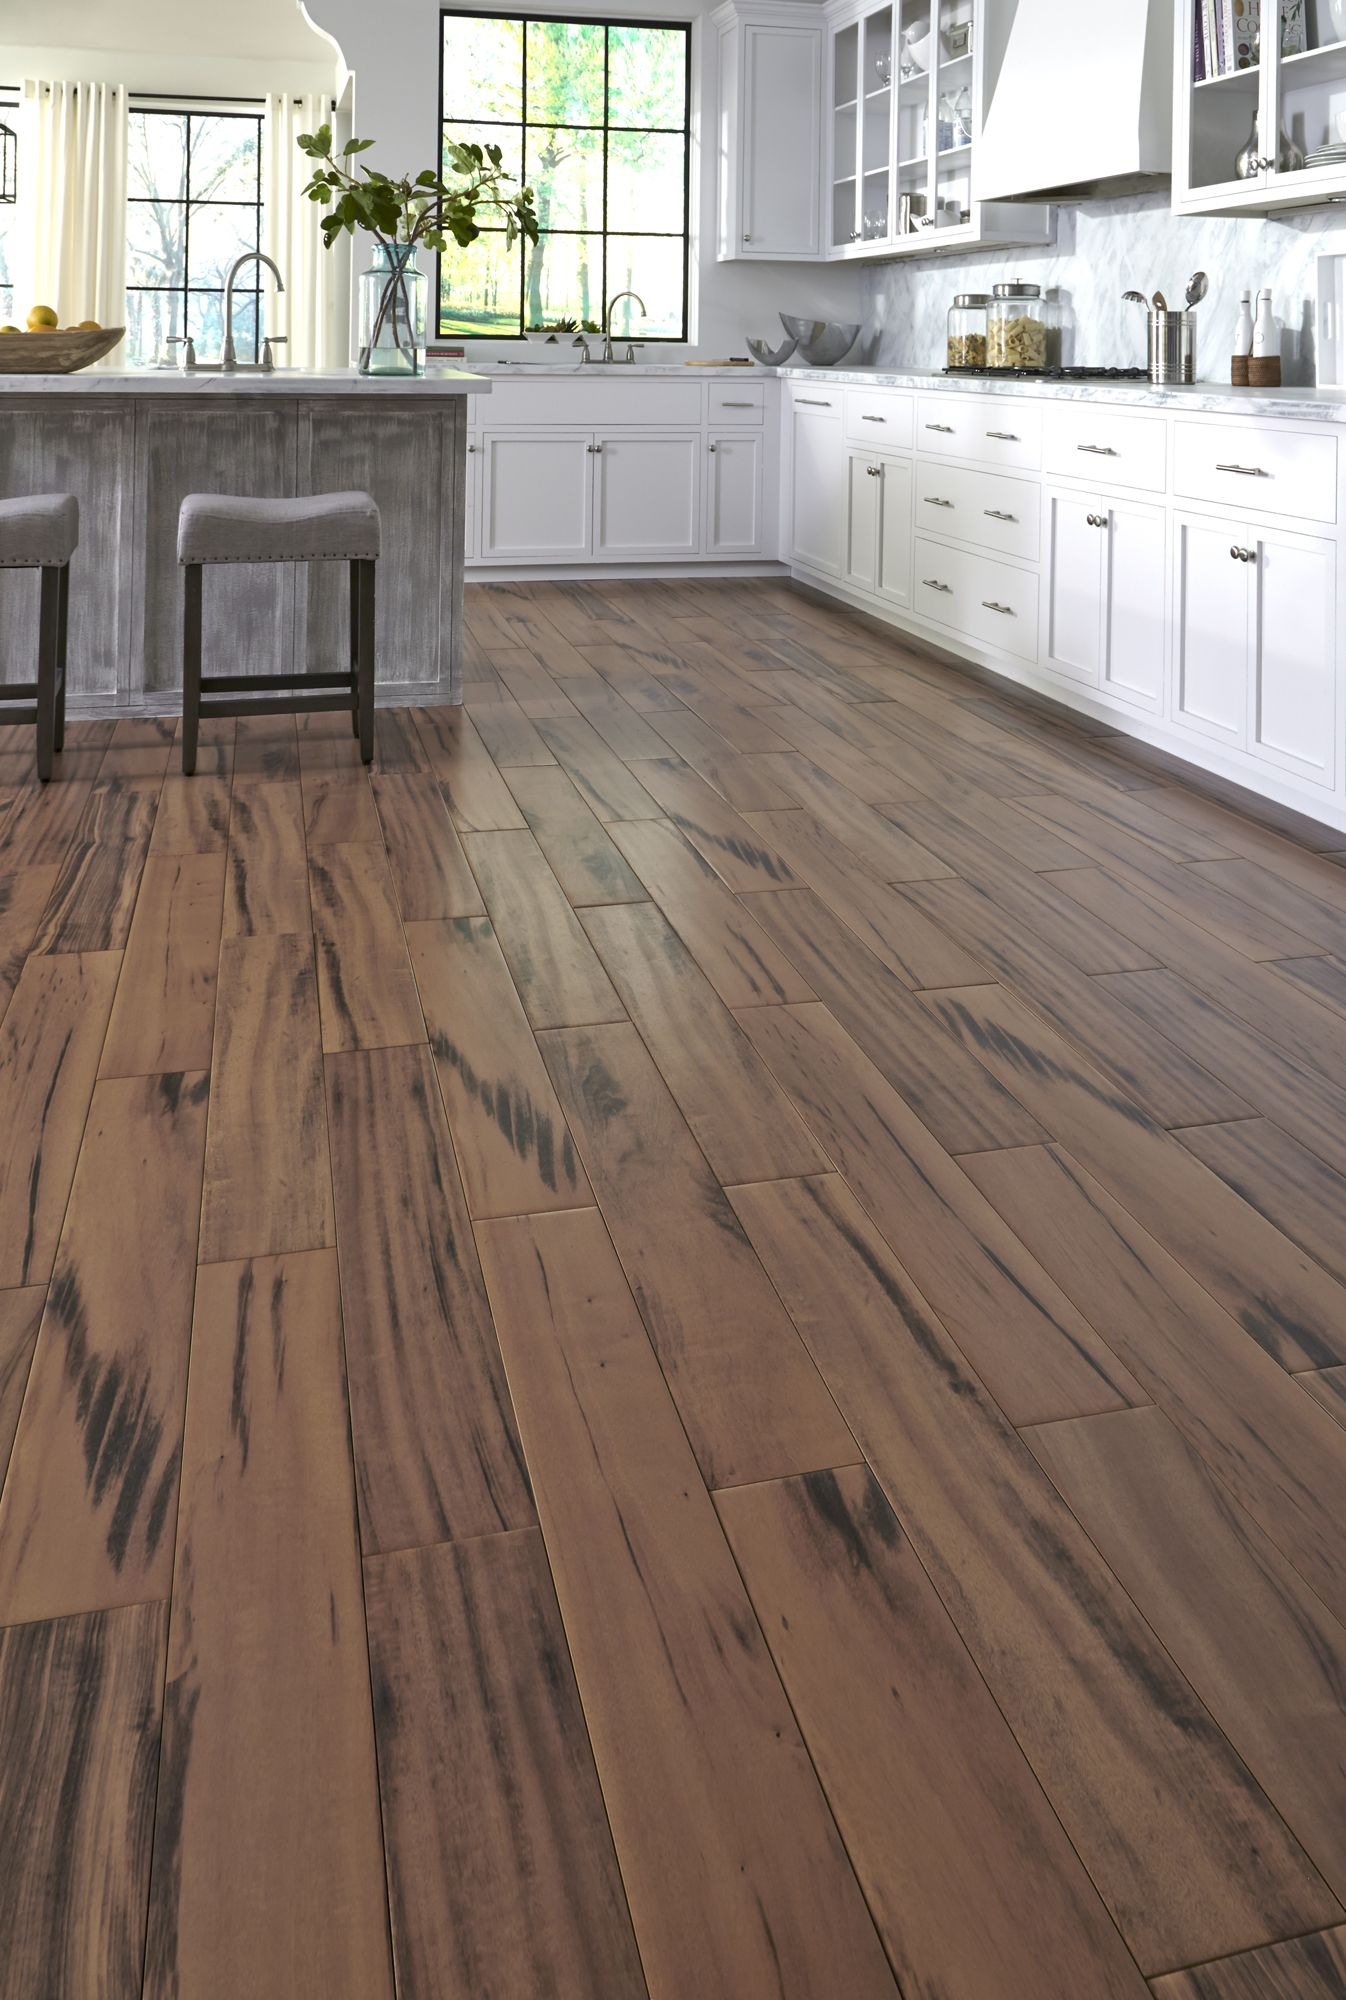 its time for your spring renewalcheck out these waterproof flooring designs we love - Waterproof Flooring For Kitchen